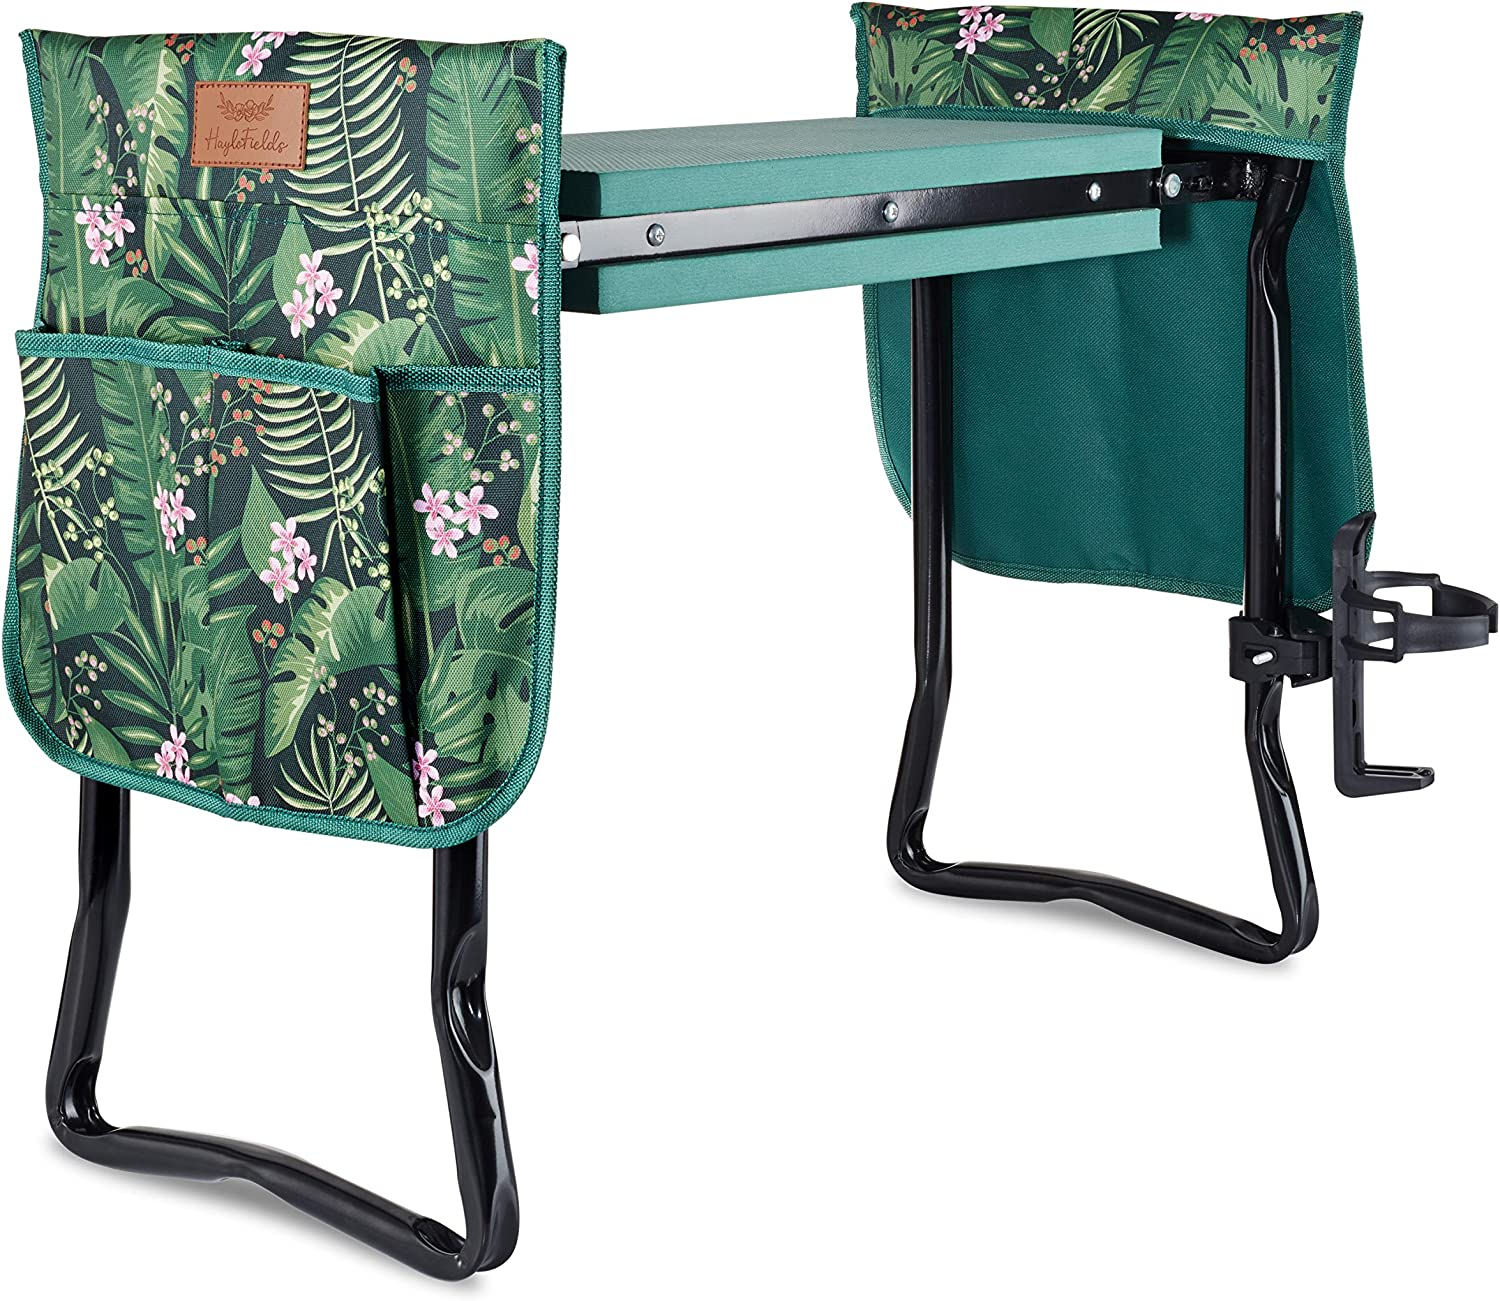 HayloFields Garden 70% OFF Outlet Kneeler and Seat Discount mail order 2 Drink Pouches Tool with